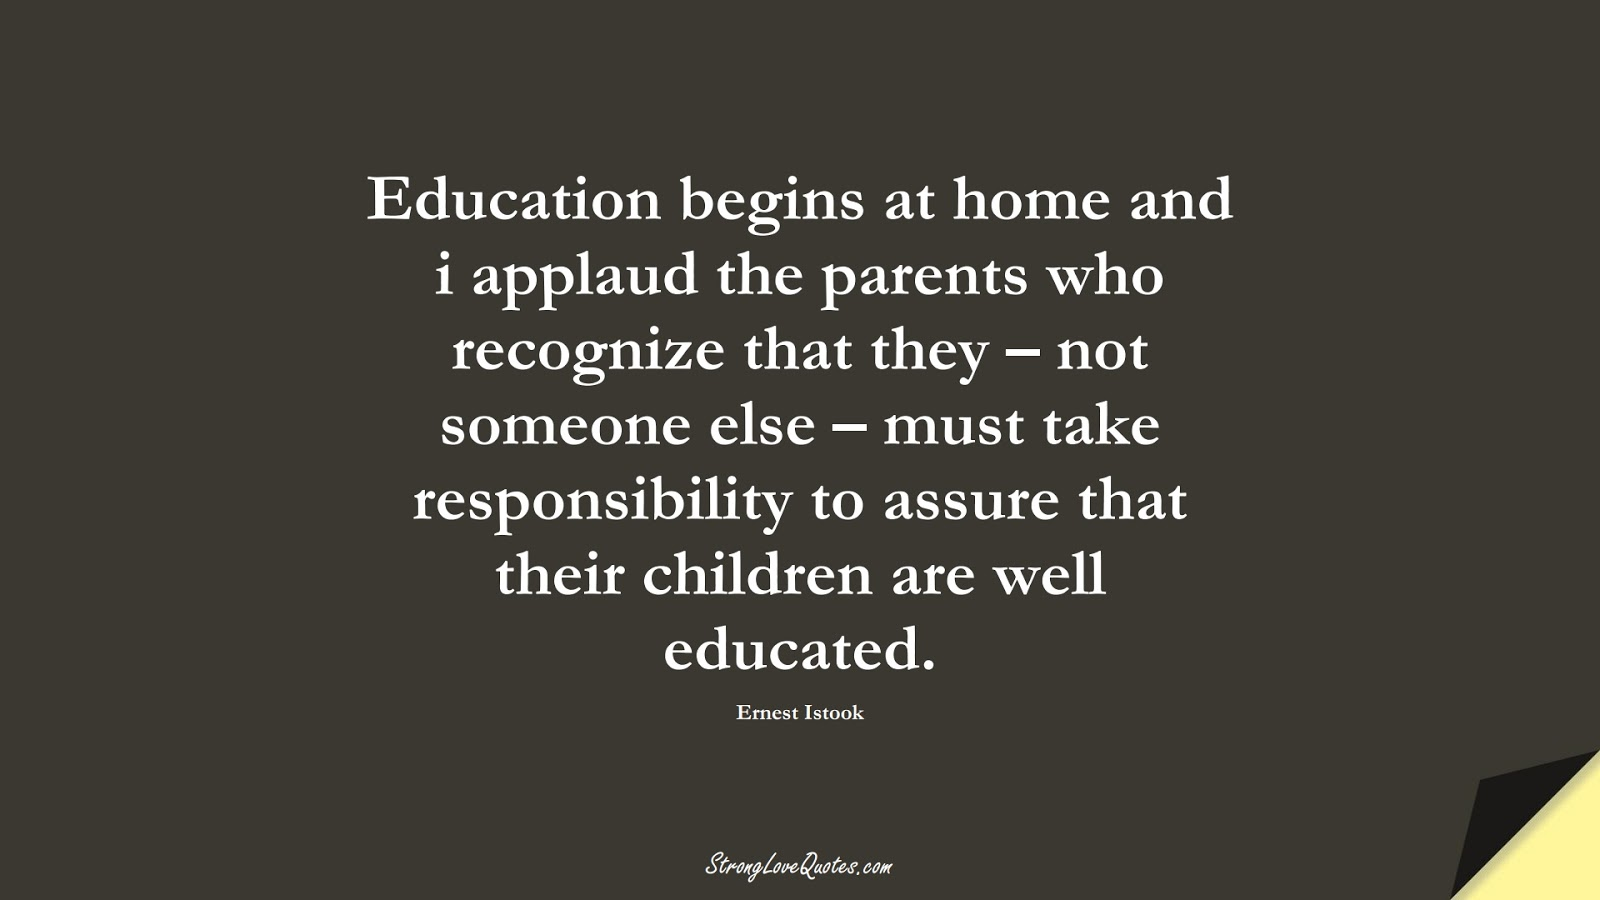 Education begins at home and i applaud the parents who recognize that they – not someone else – must take responsibility to assure that their children are well educated. (Ernest Istook);  #EducationQuotes